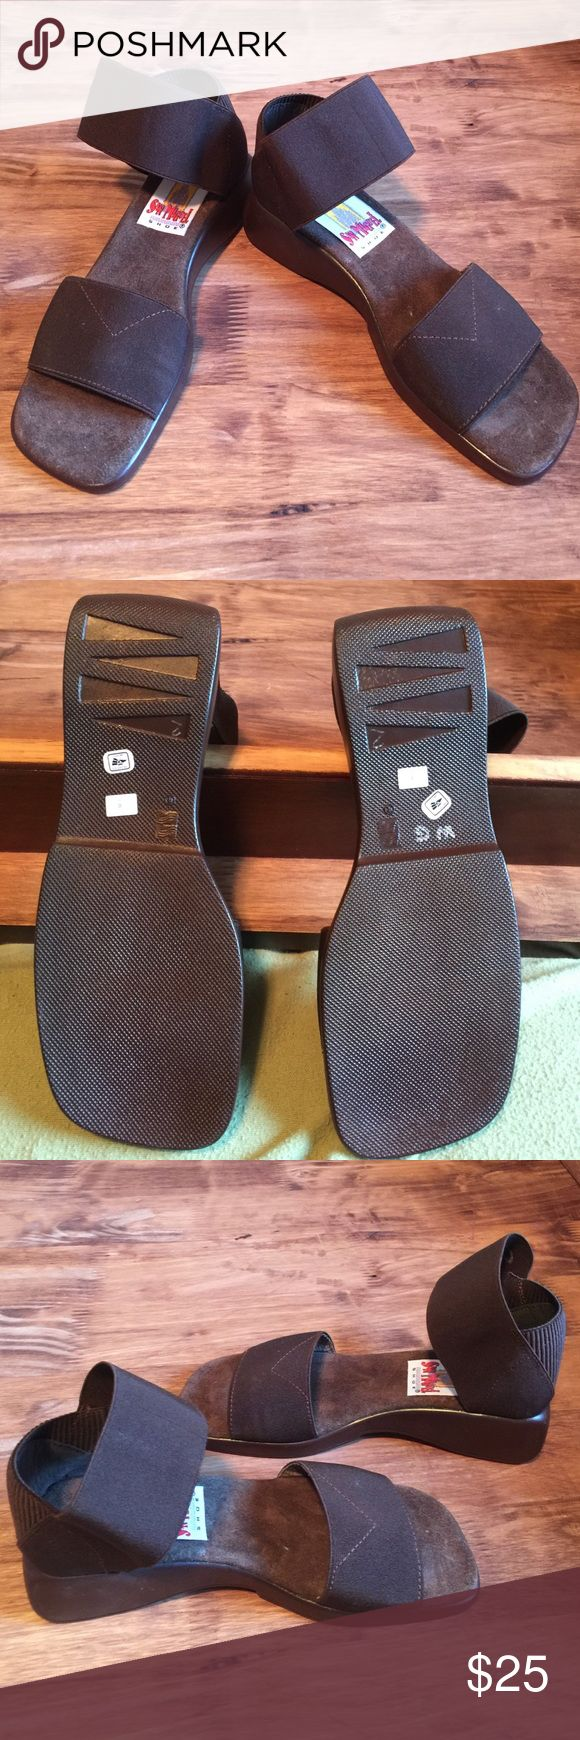 Comfy San Miguel open toe mules Elastic ankle strap & in the strap just above your toes for a custom, comfy fit. Brand new, no tags, never worn. They are not my size but wanted to give an idea of the fit/look. Listed at $88 on a website I Googled. 😳 San Miguel Shoes Mules & Clogs